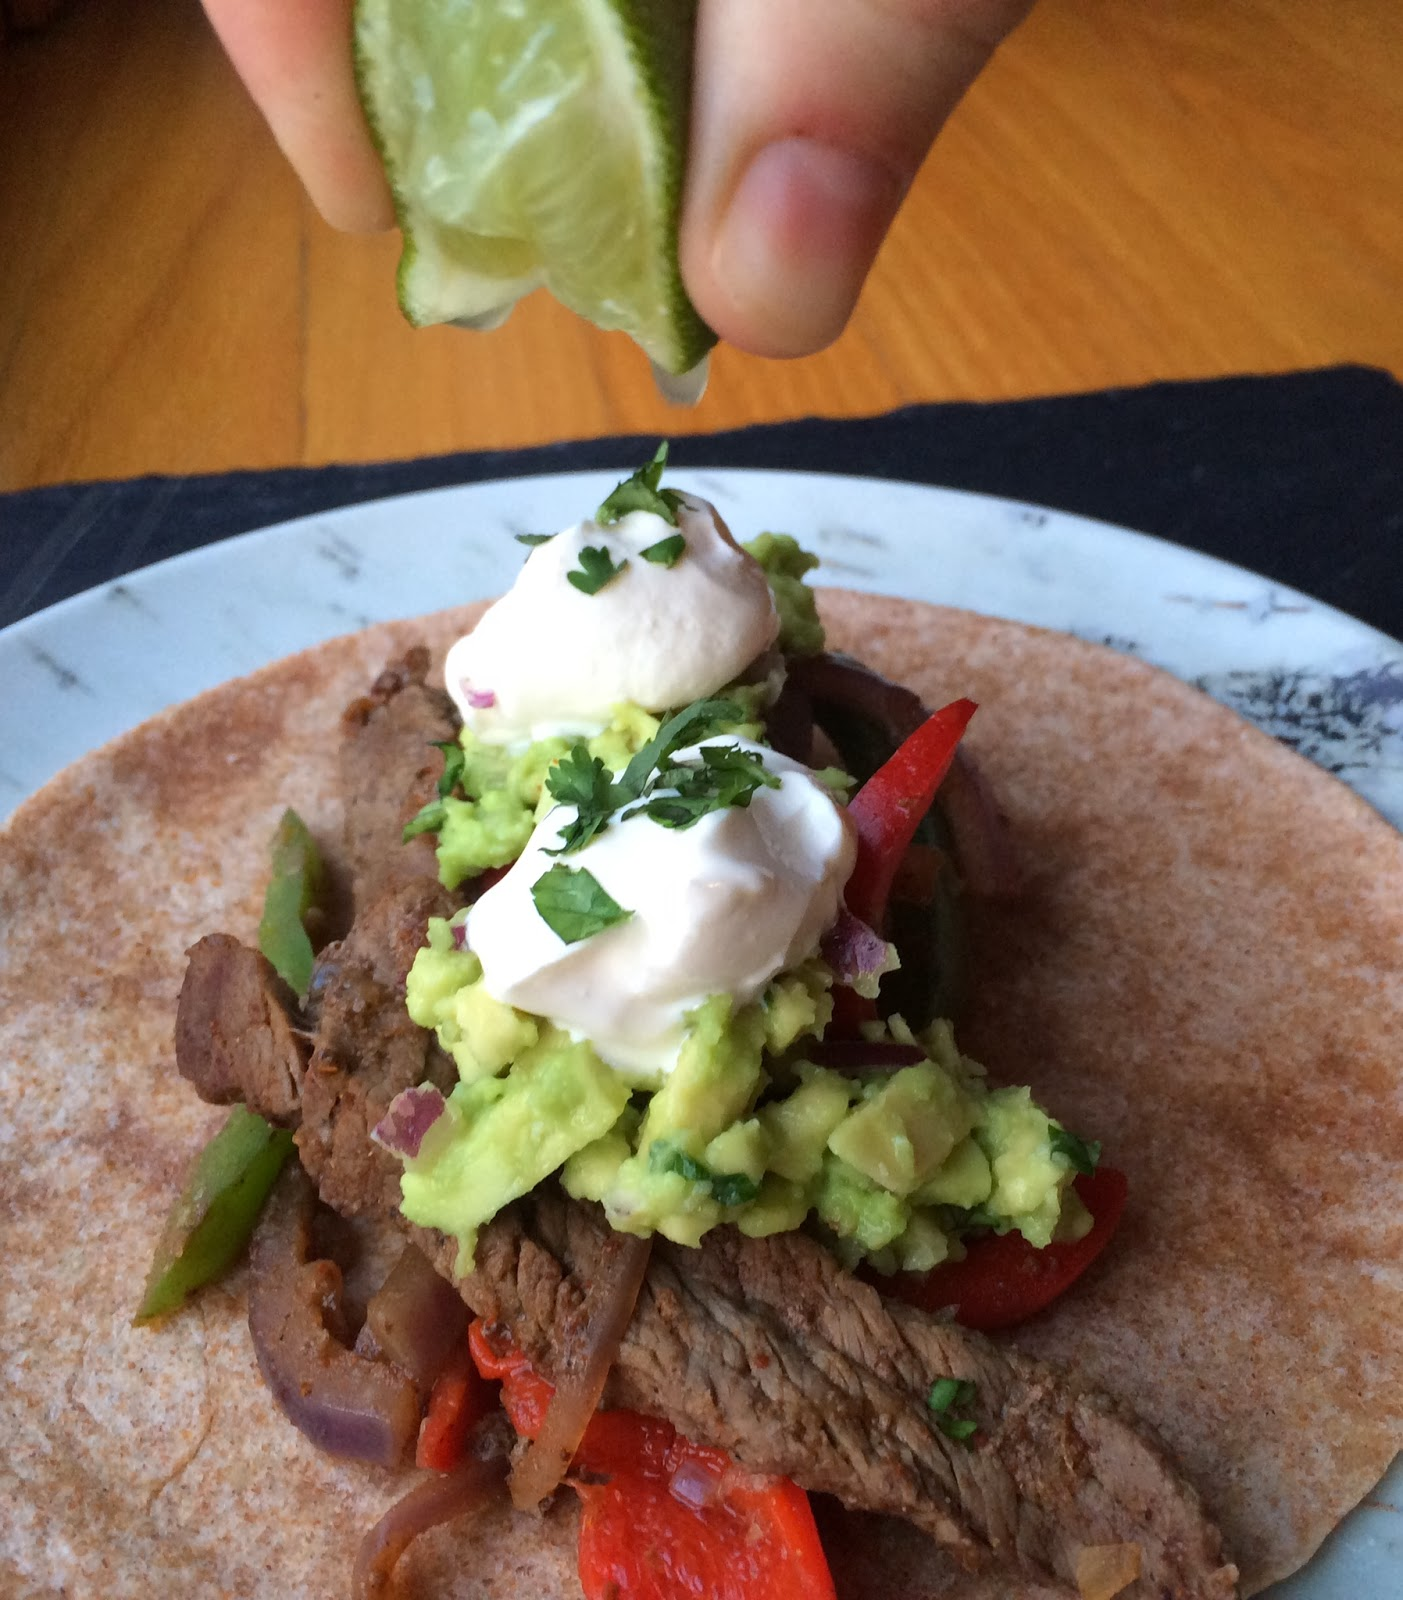 Top Ate on Your Plate Blue Apron Review: Steak Fajitas